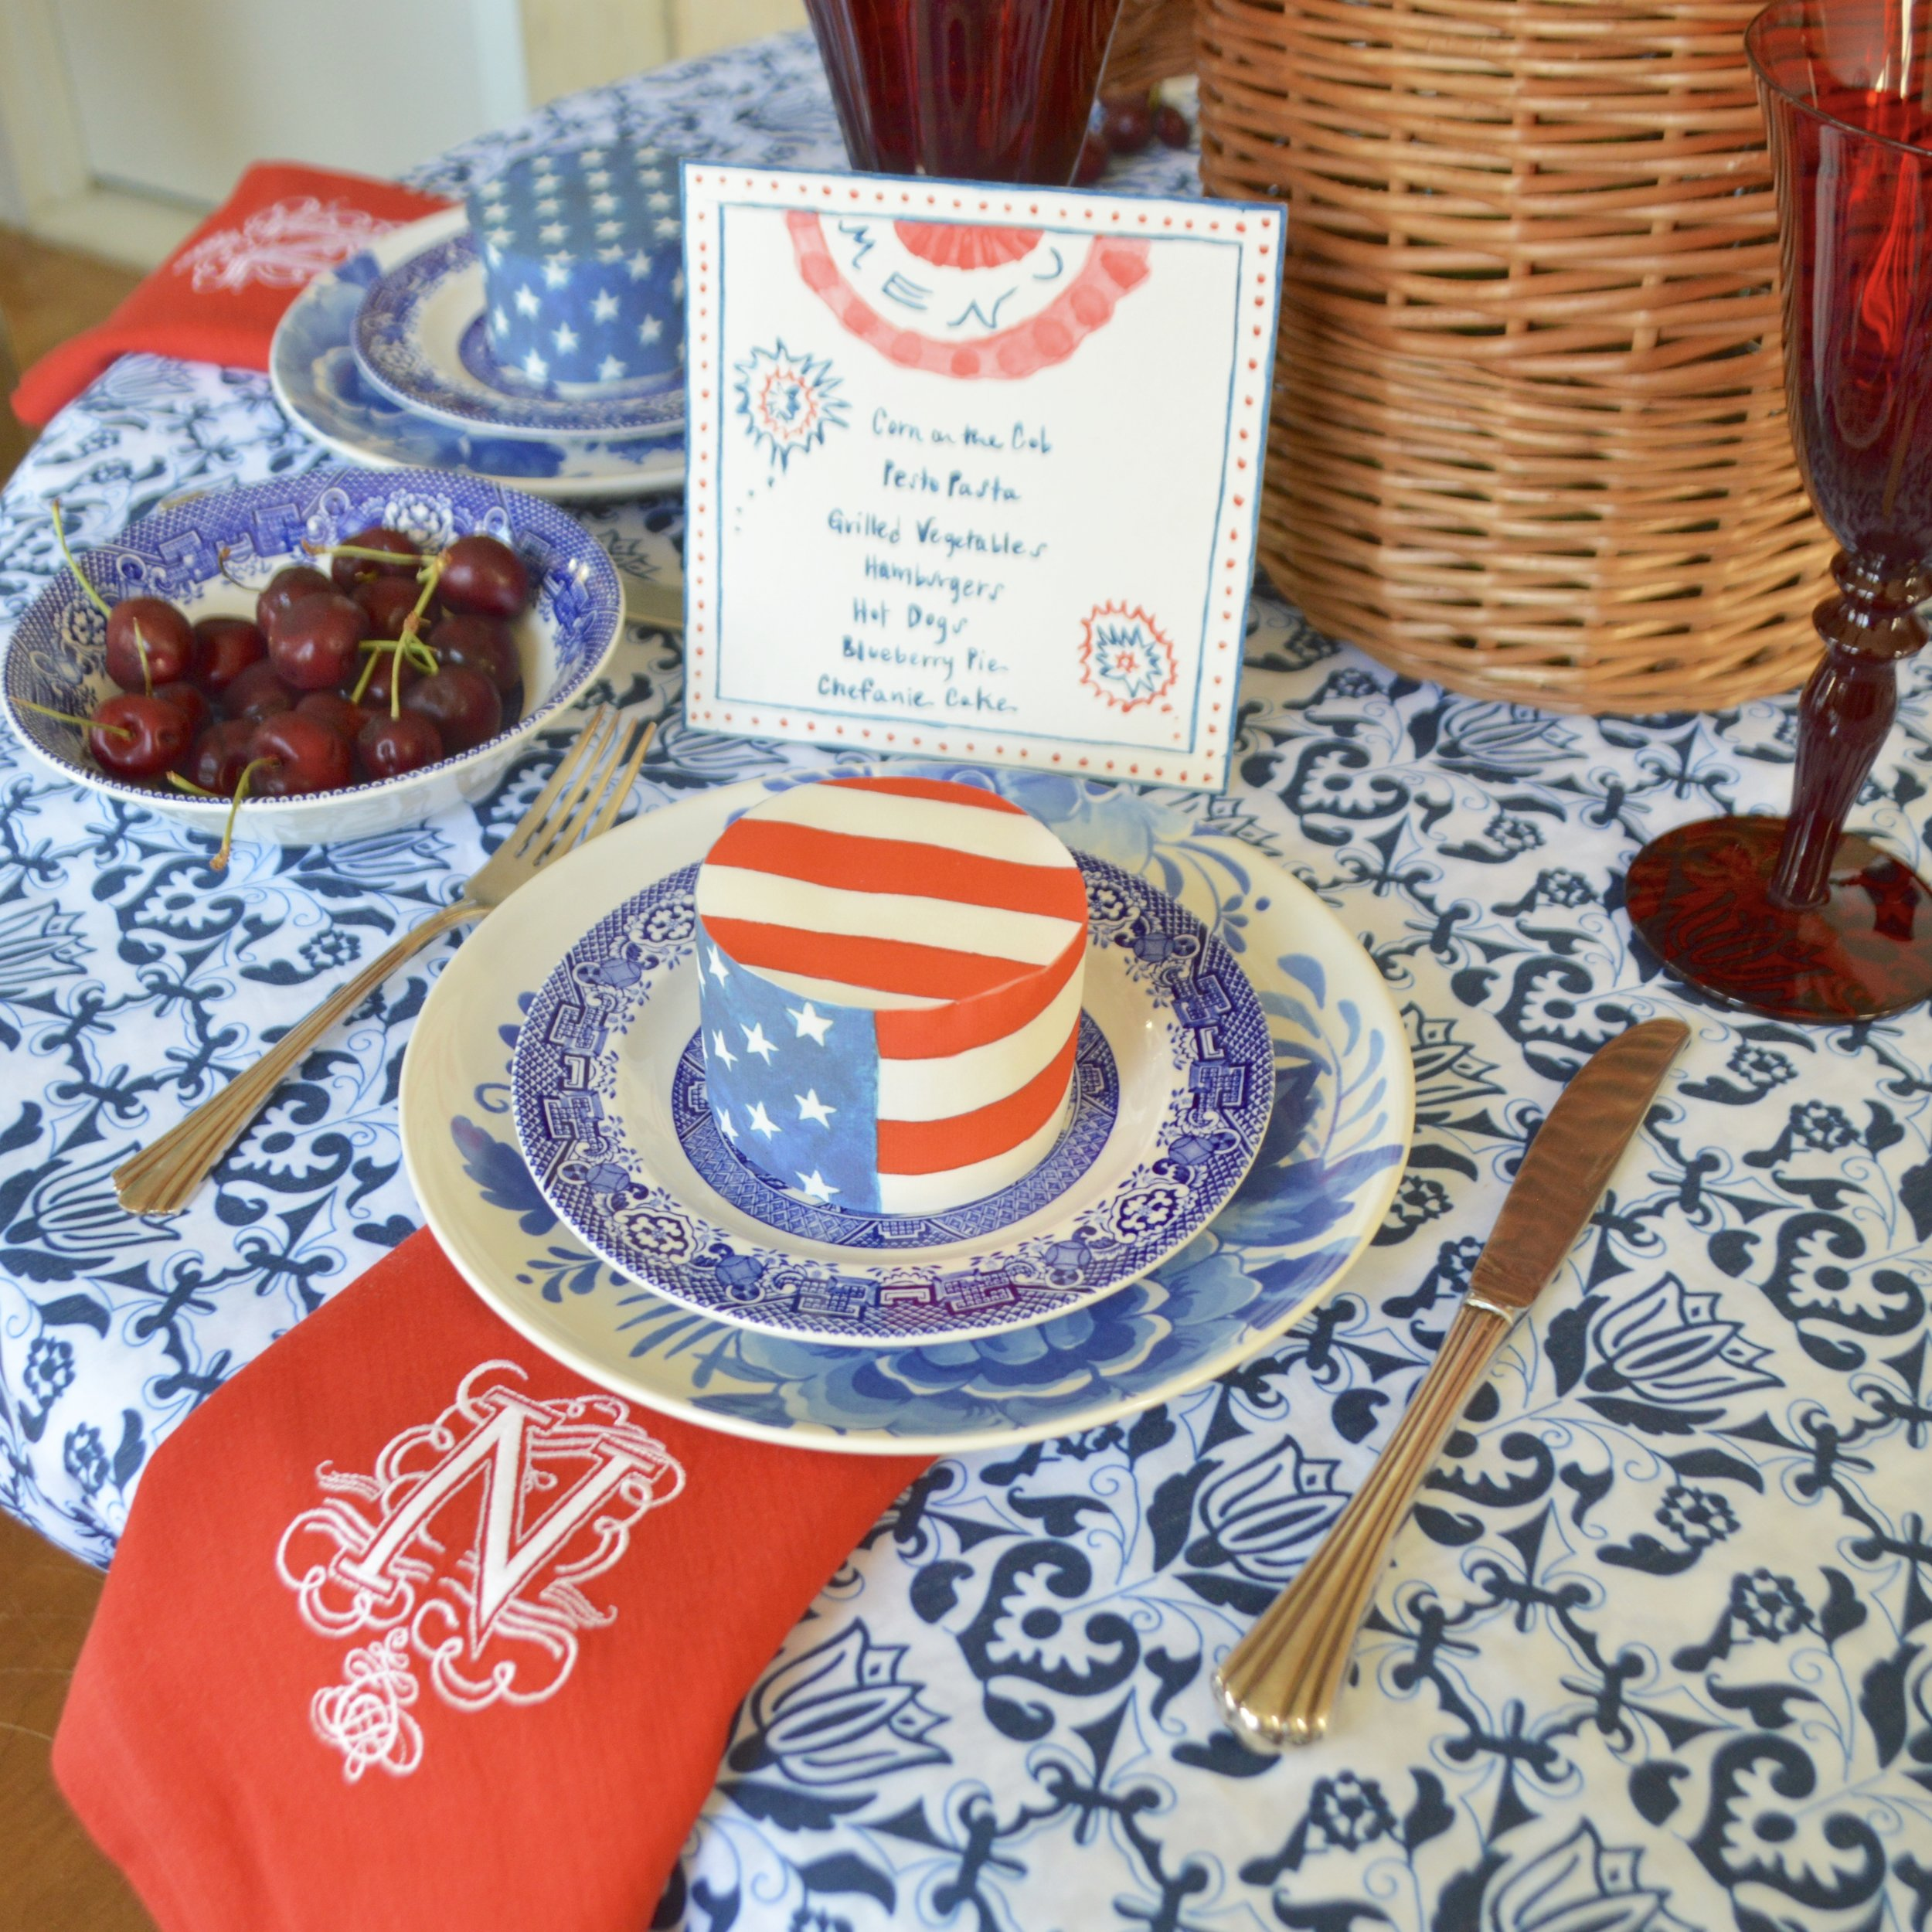 Mini Cake Wrapped in  Flag Chefanie Sheets , over  Blue & White Tablecloth , with  Custom Embroidered Napkins